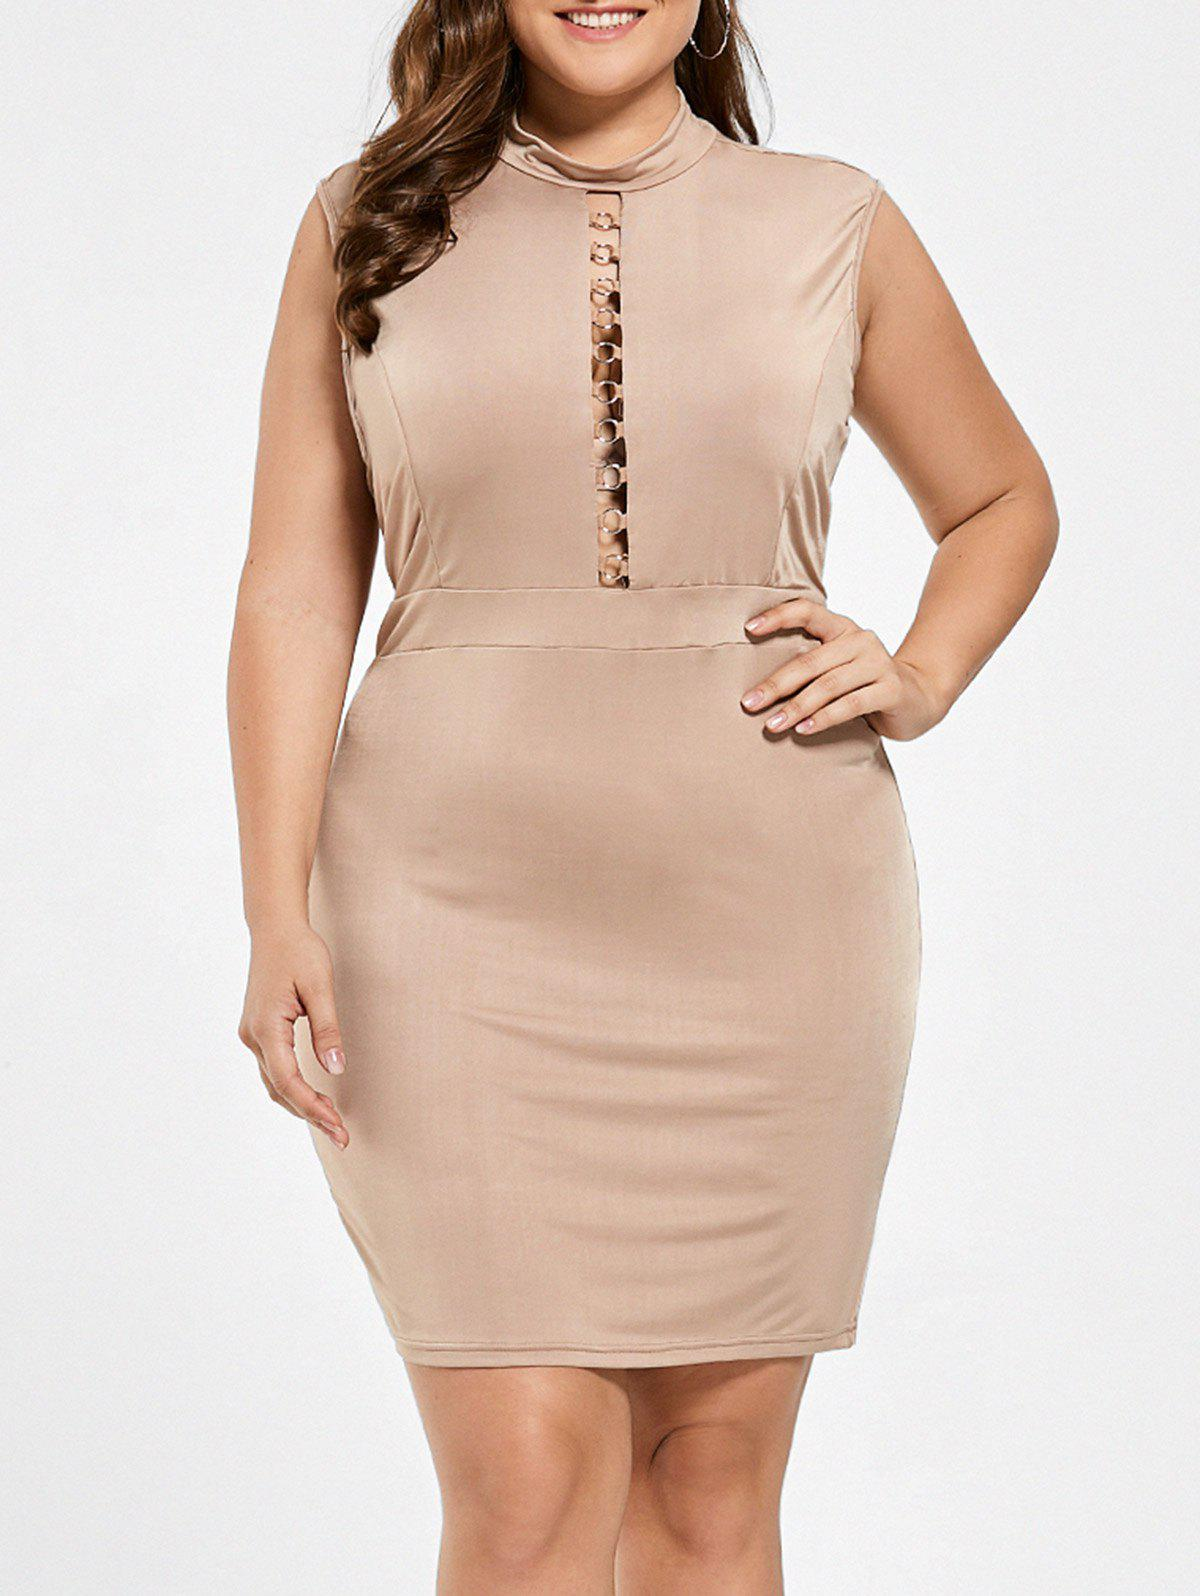 773f19c8316 2018 High Neck Cut Out Plus Size Bodycon Dress In Camel 2xl ...